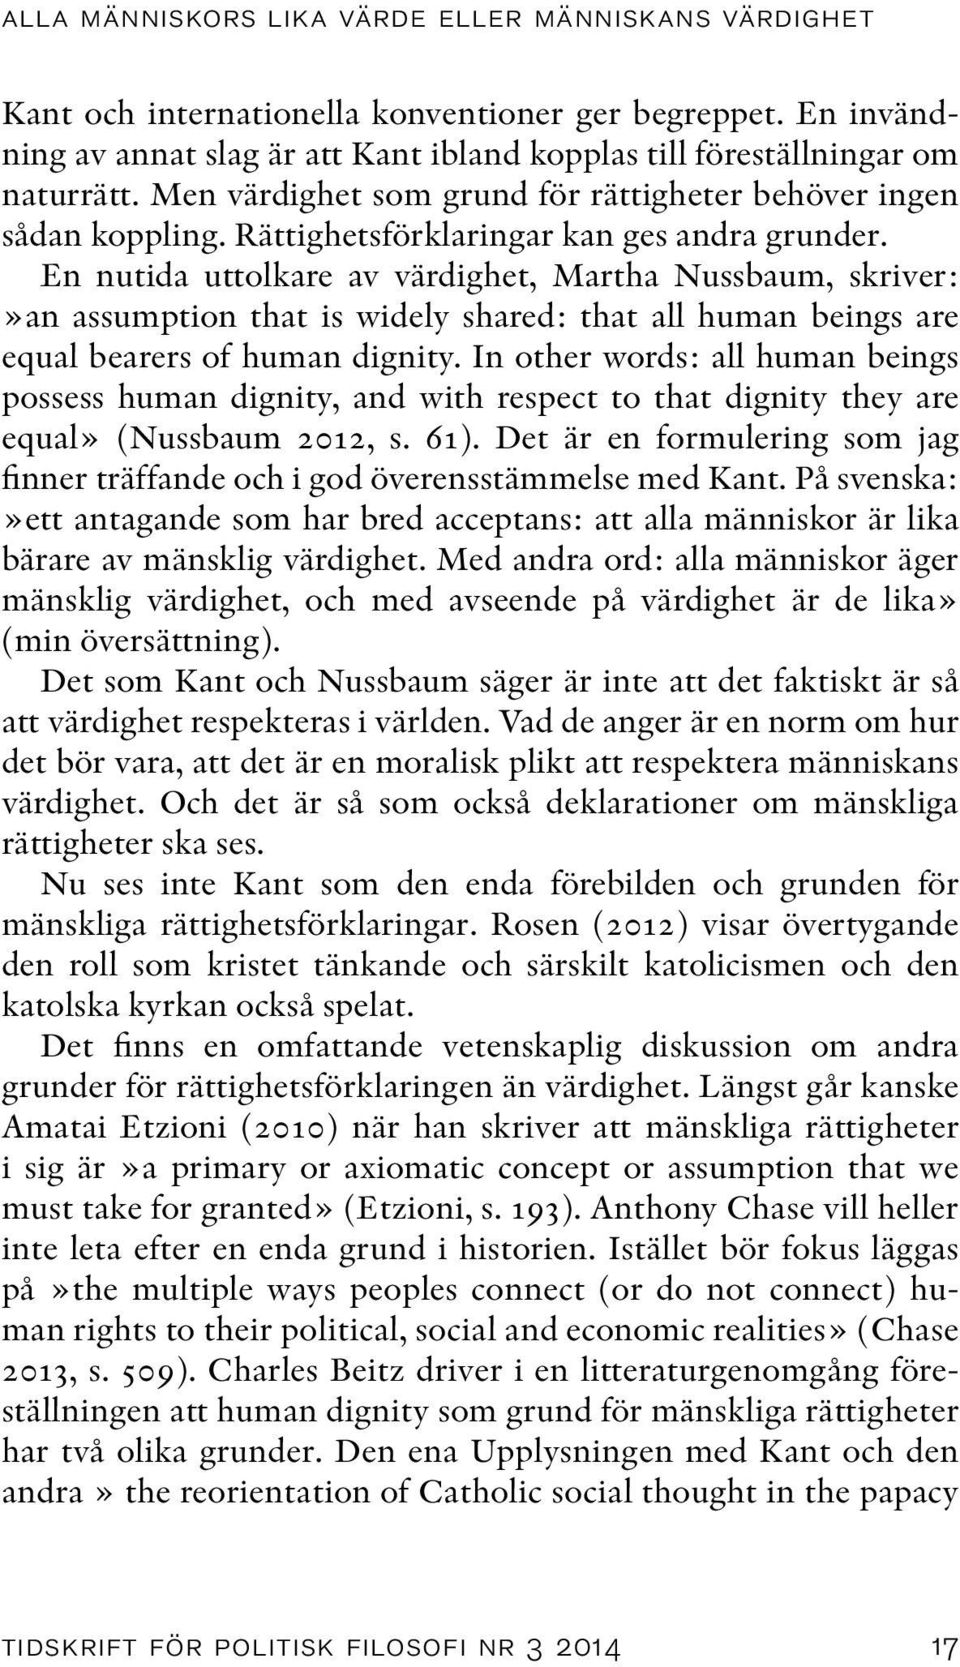 En nutida uttolkare av värdighet, Martha Nussbaum, skriver:»an assumption that is widely shared: that all human beings are equal bearers of human dignity.